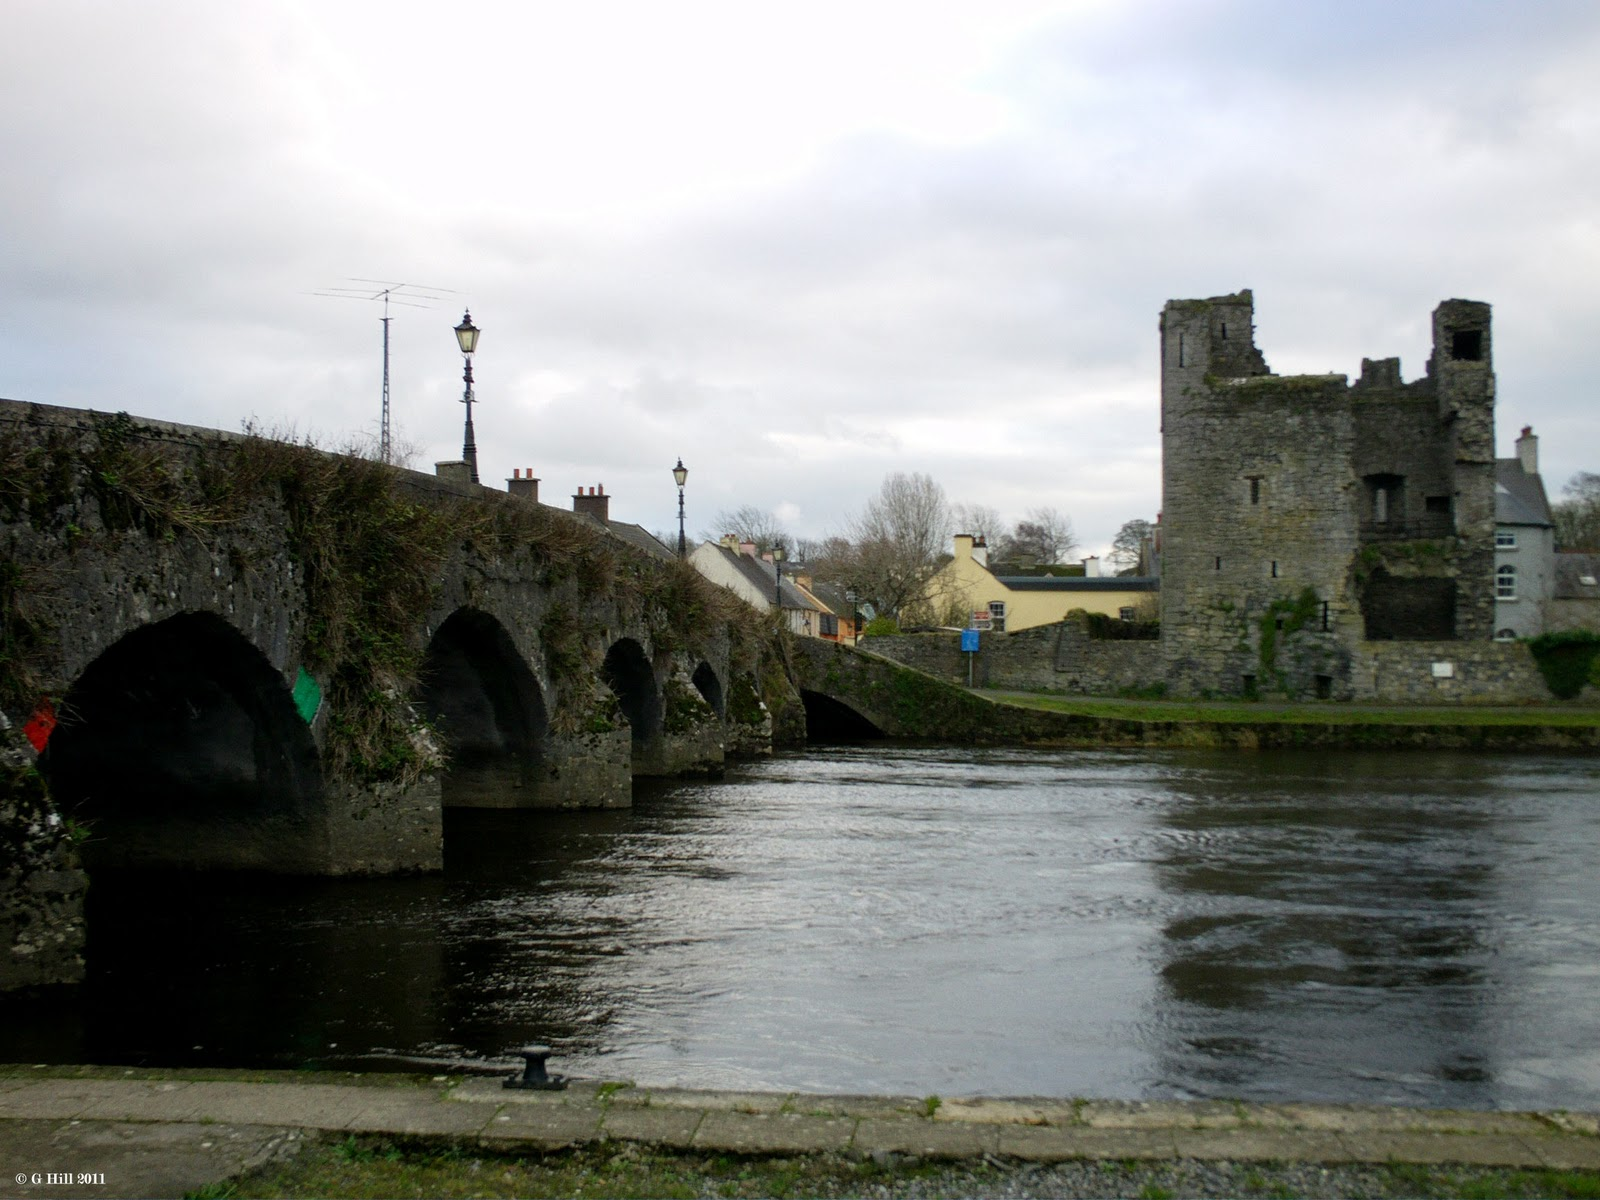 Carlow Ireland  City pictures : Ireland In Ruins: The Black Castle Co Carlow